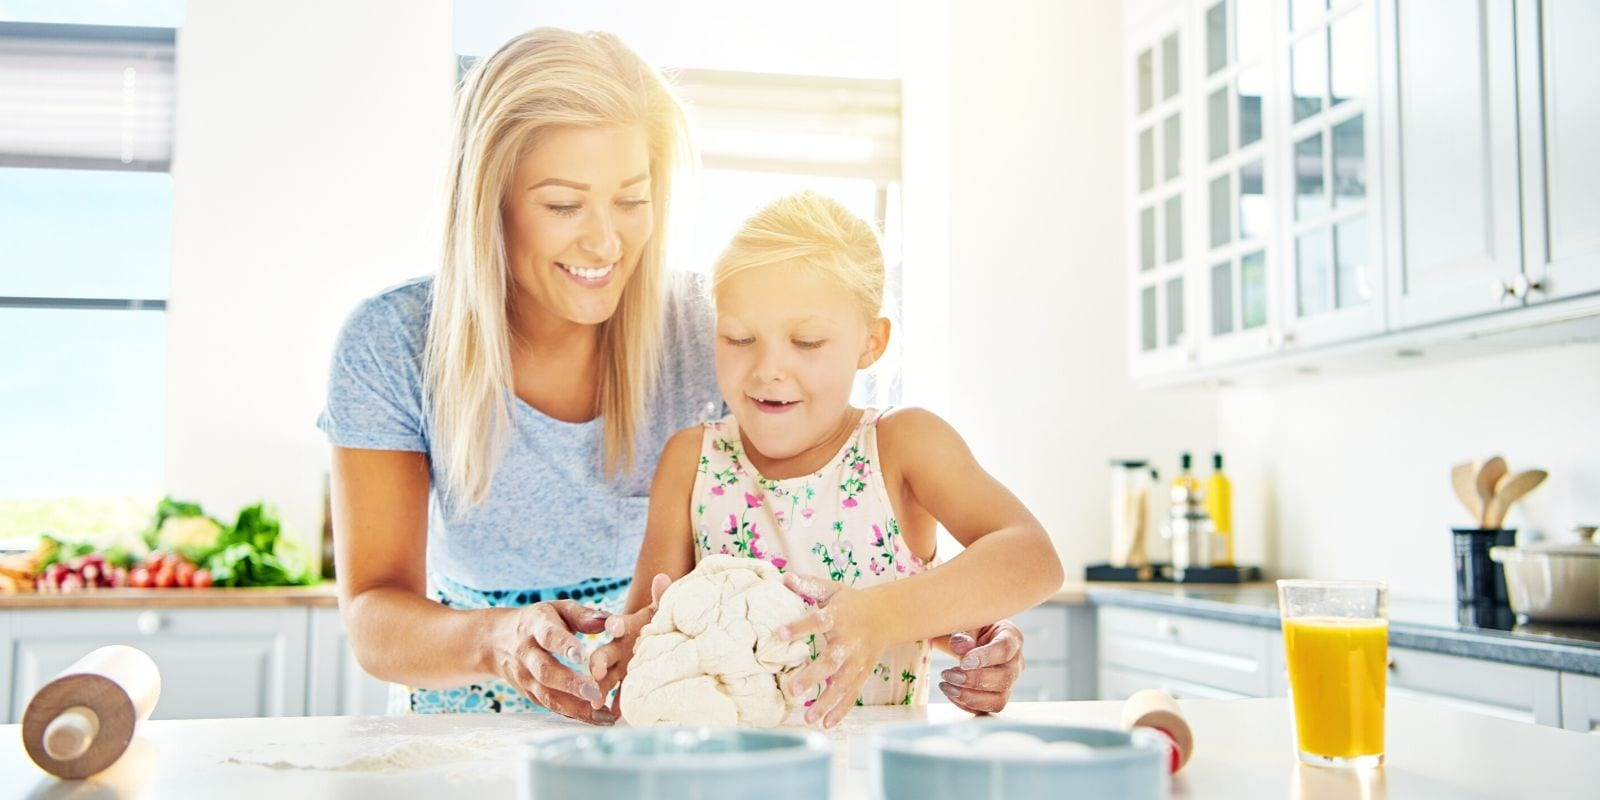 Using Cooking for Education: What You Need to Know